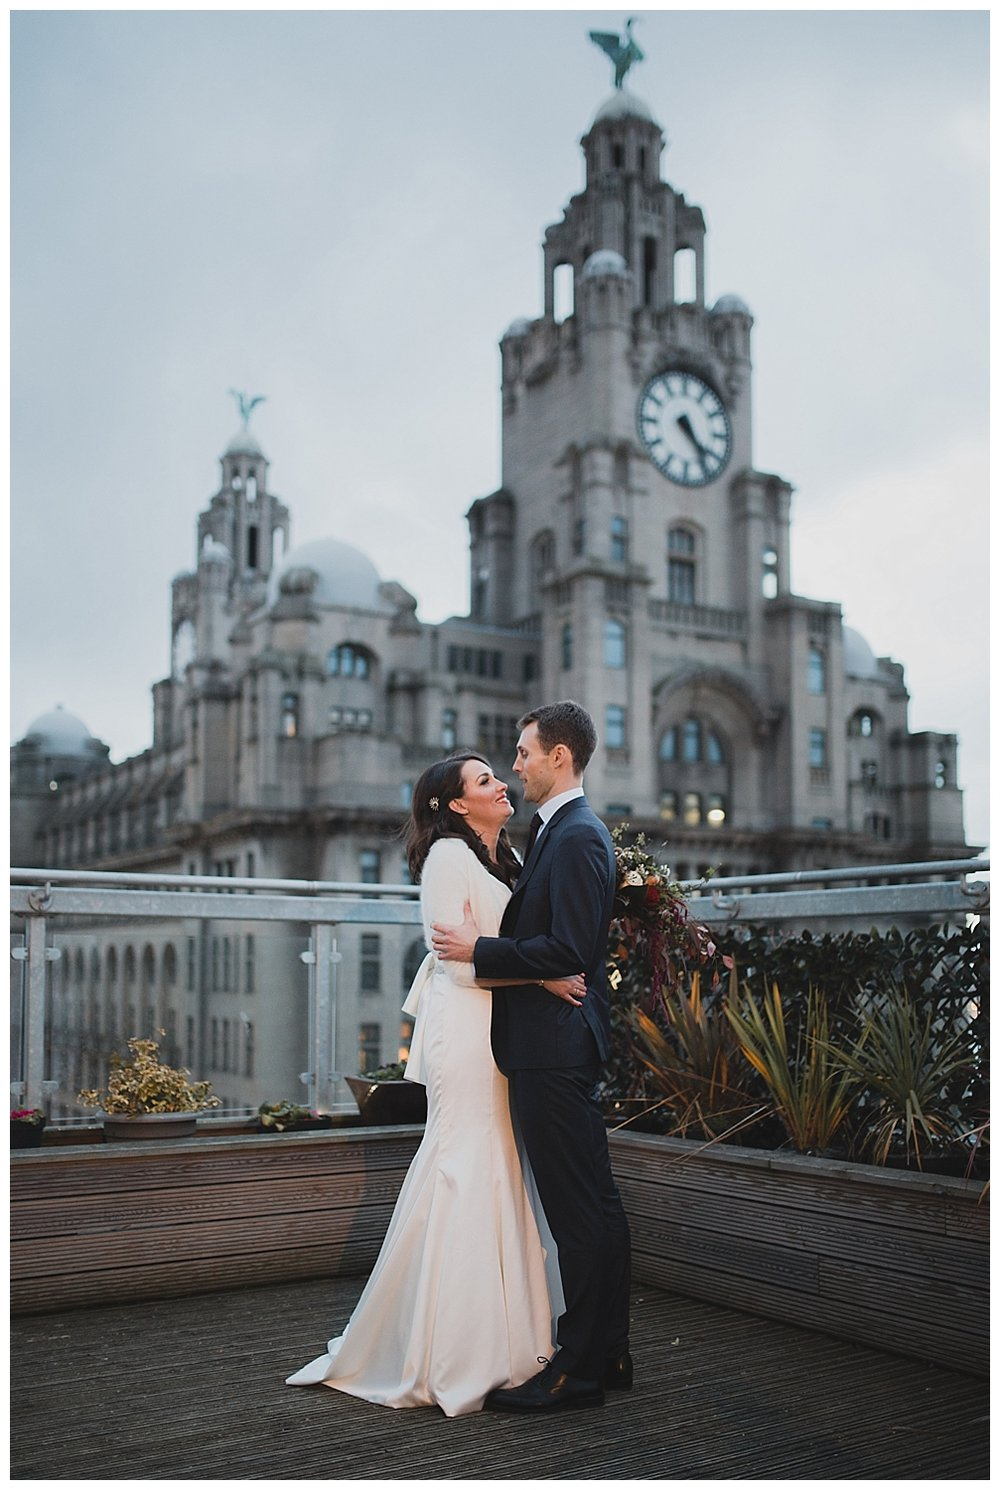 Bride and groom on the roof terrace at Oh Me Oh My Liverpool. The Liver building and Liver birds in the background.